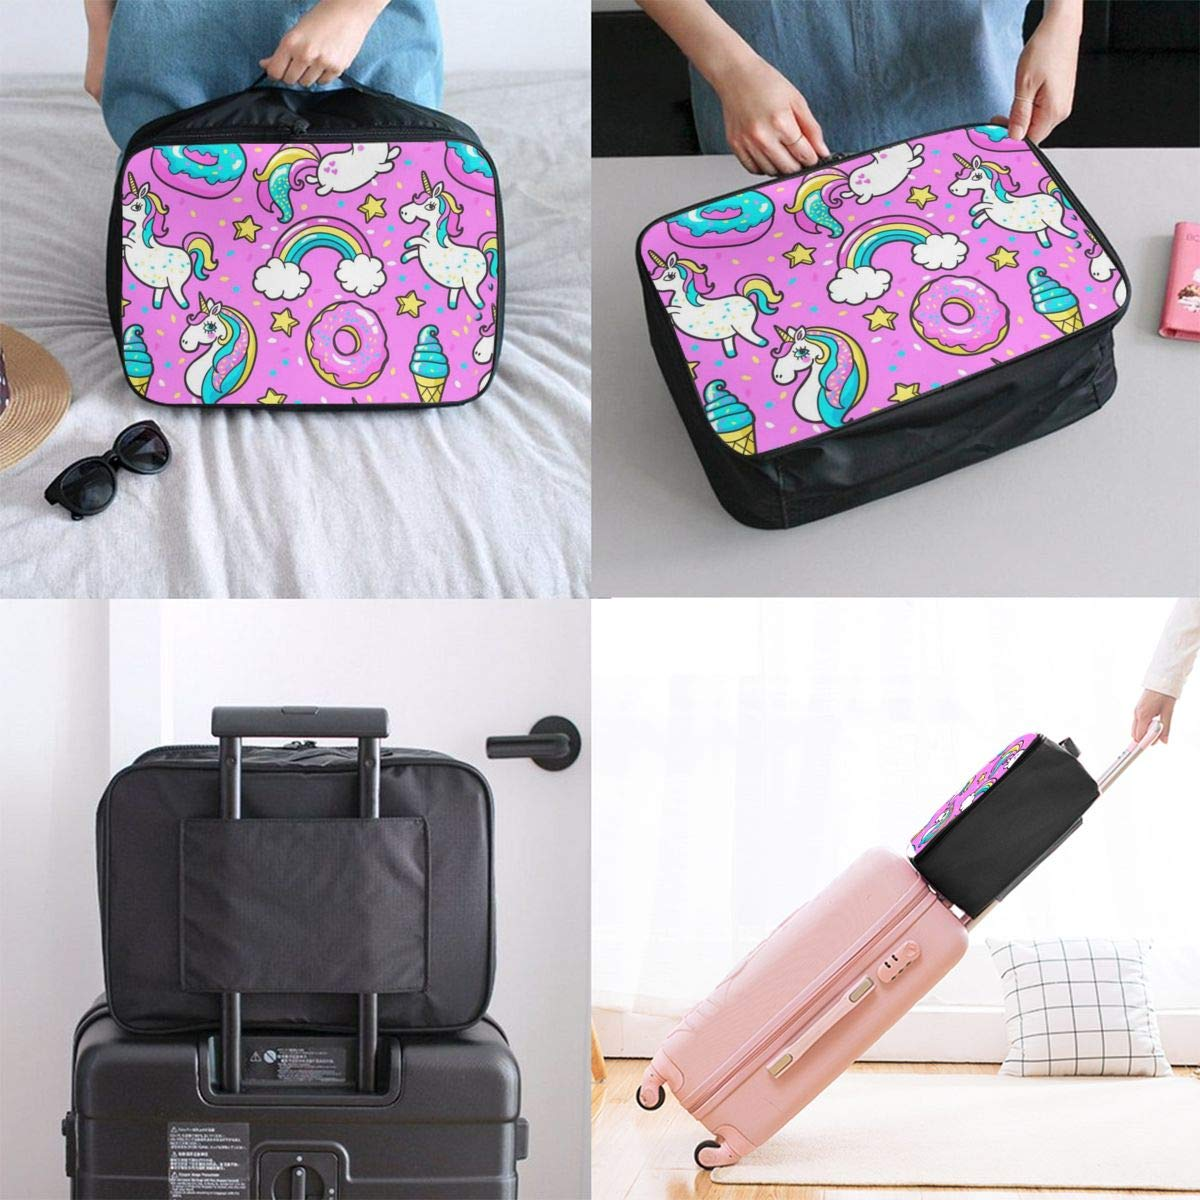 Nylon Lightweight Tote Luggage Bag Water Resistant Luggage Hanging Bag Vacation Travel Duffle Bag Weekender Bag In Trolley Handle Cute Unicorn Narwhal Pattern Blue Overnight Bag